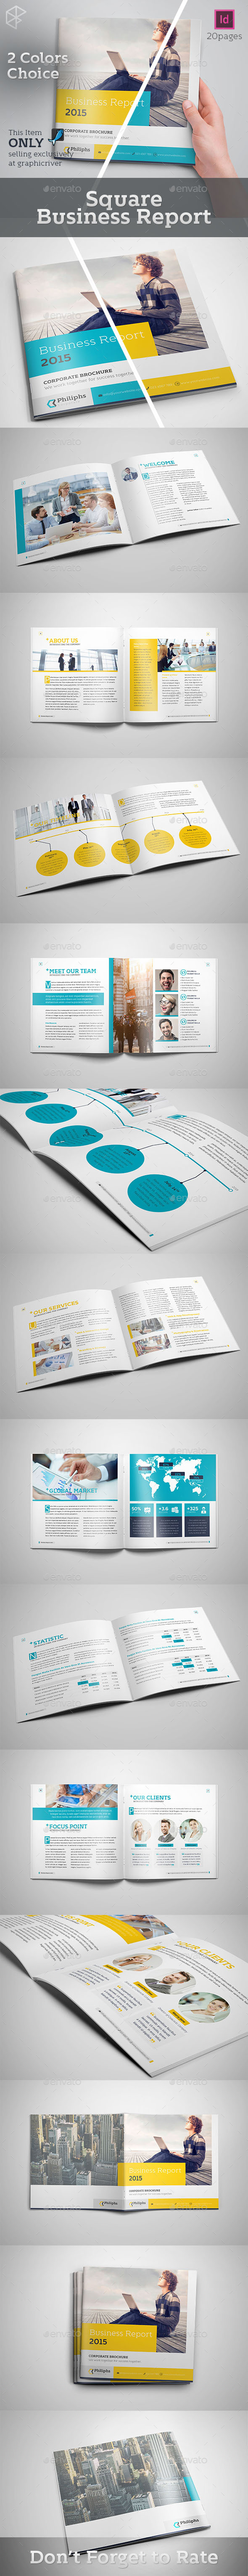 Square Business Report - Corporate Brochures